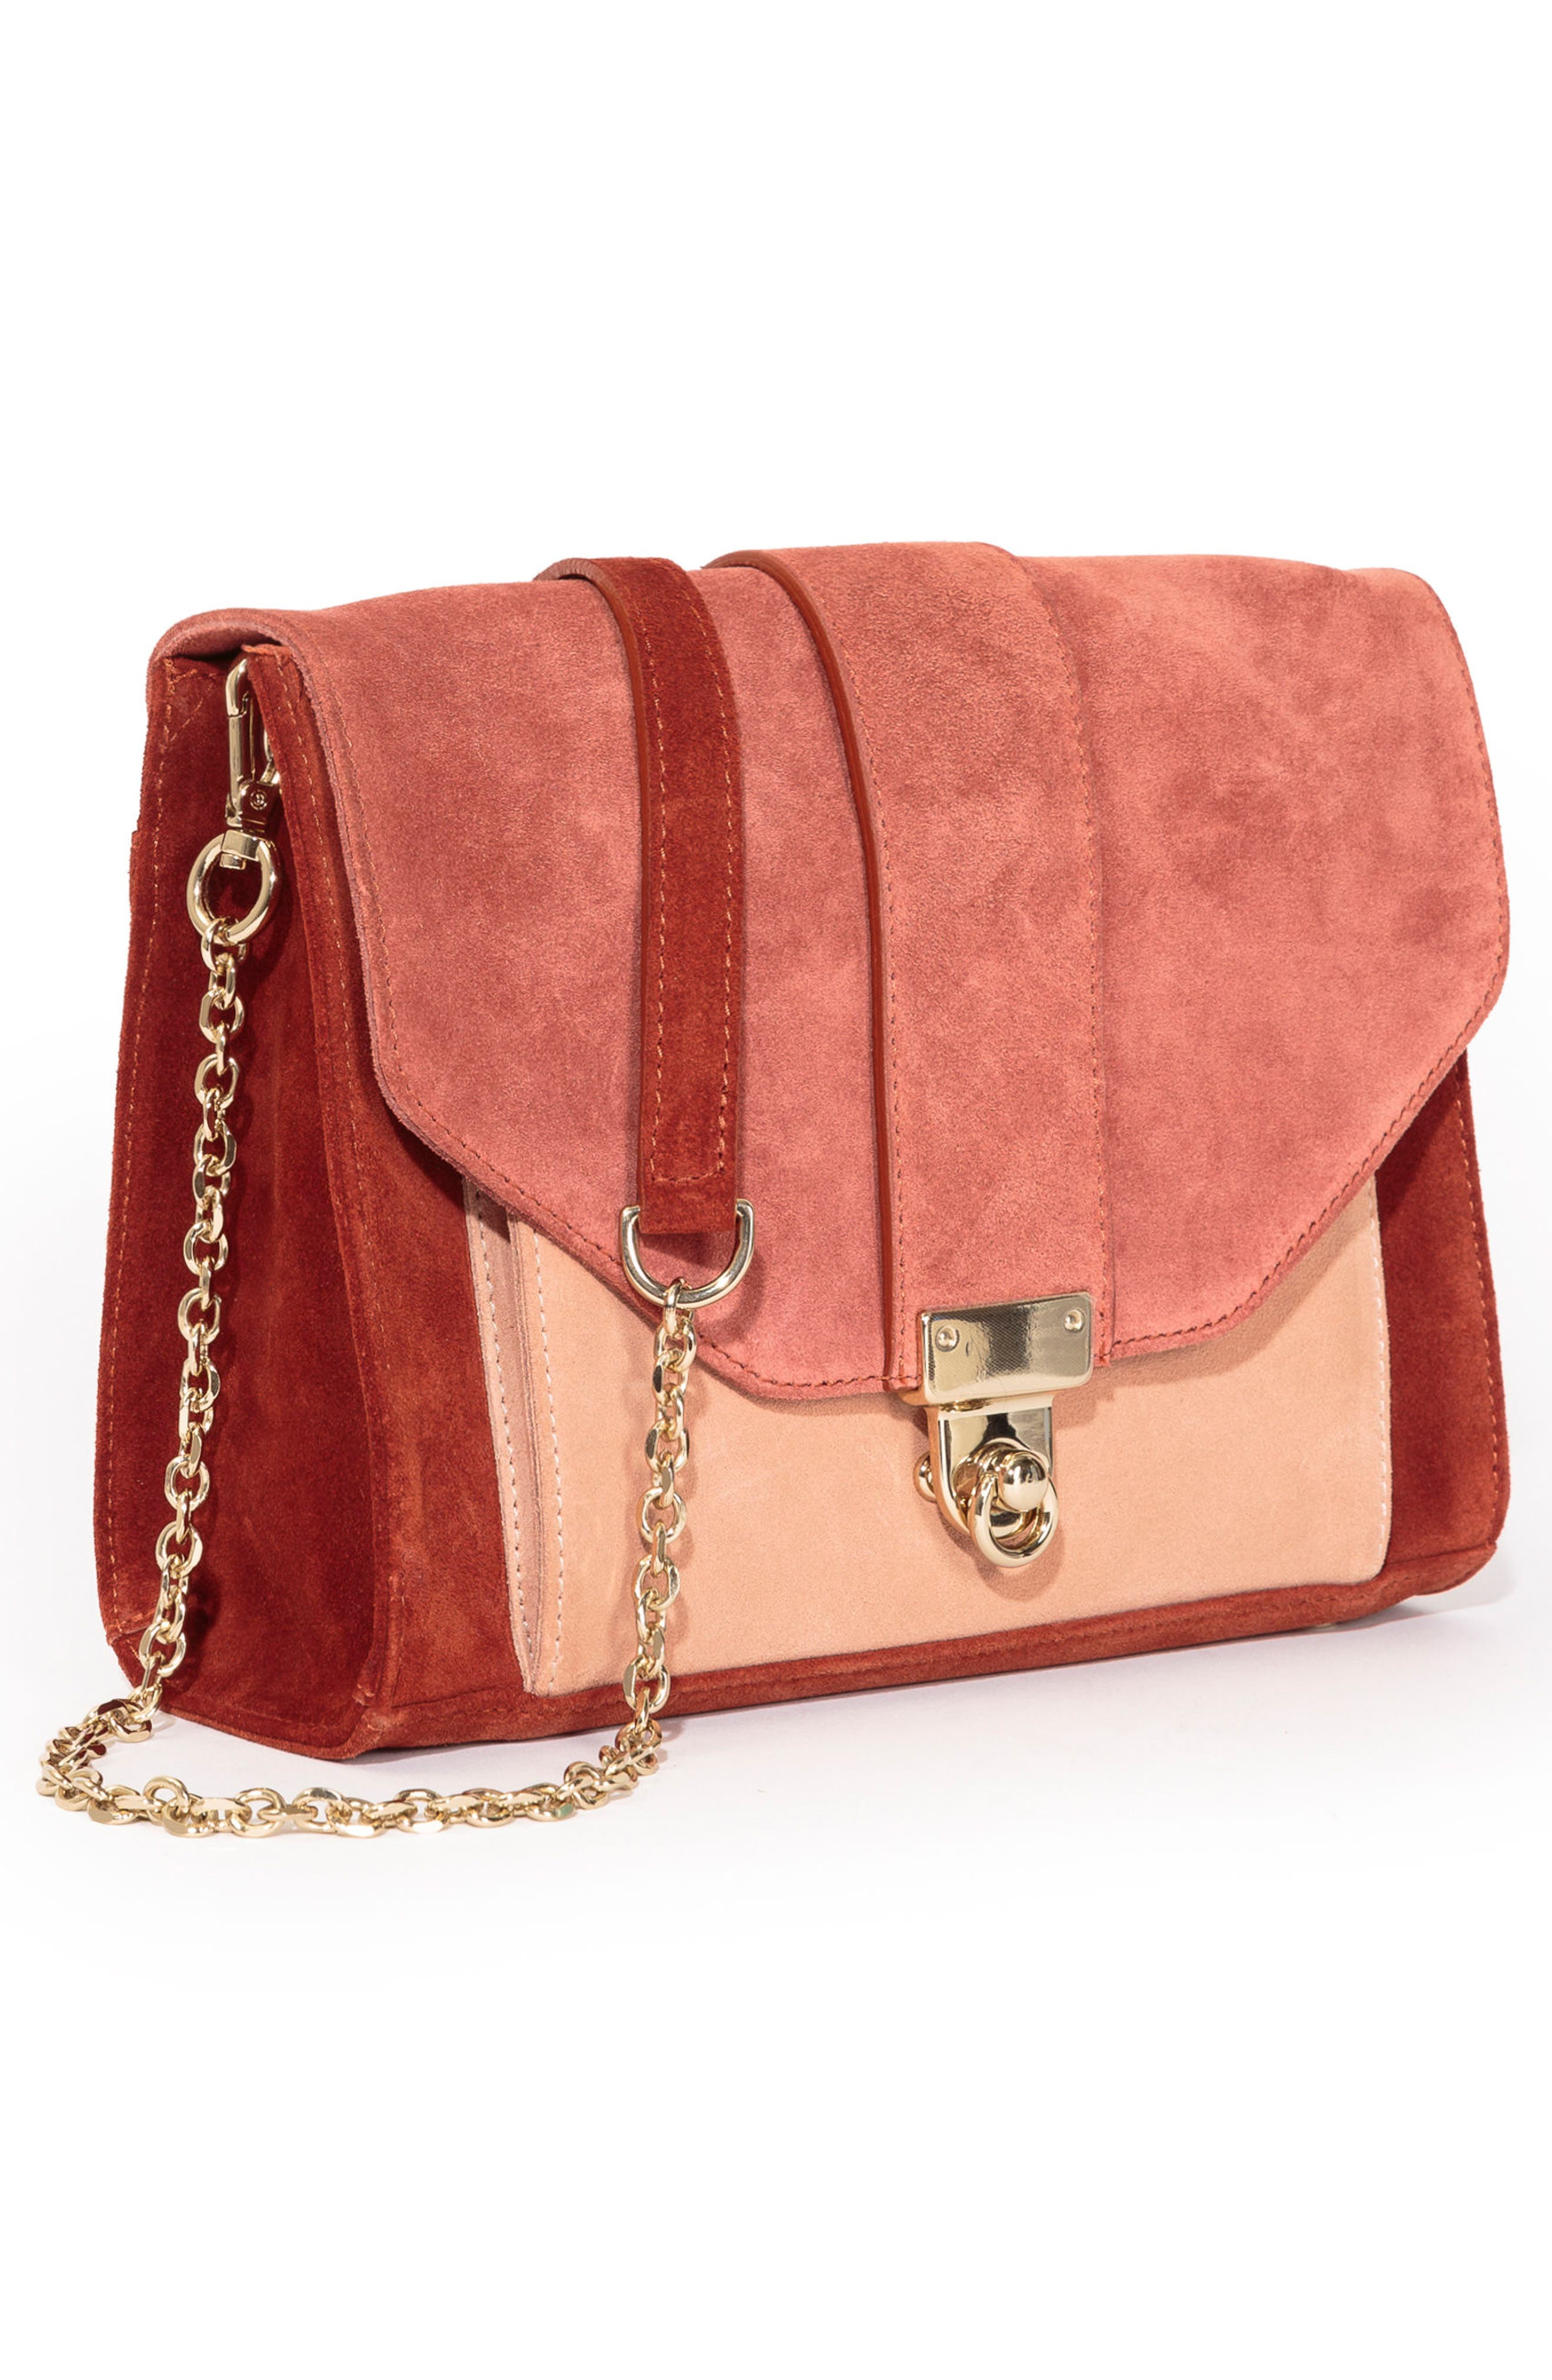 Tiger Crossbody Bag,                             Alternate thumbnail 5, color,                             Terracotta